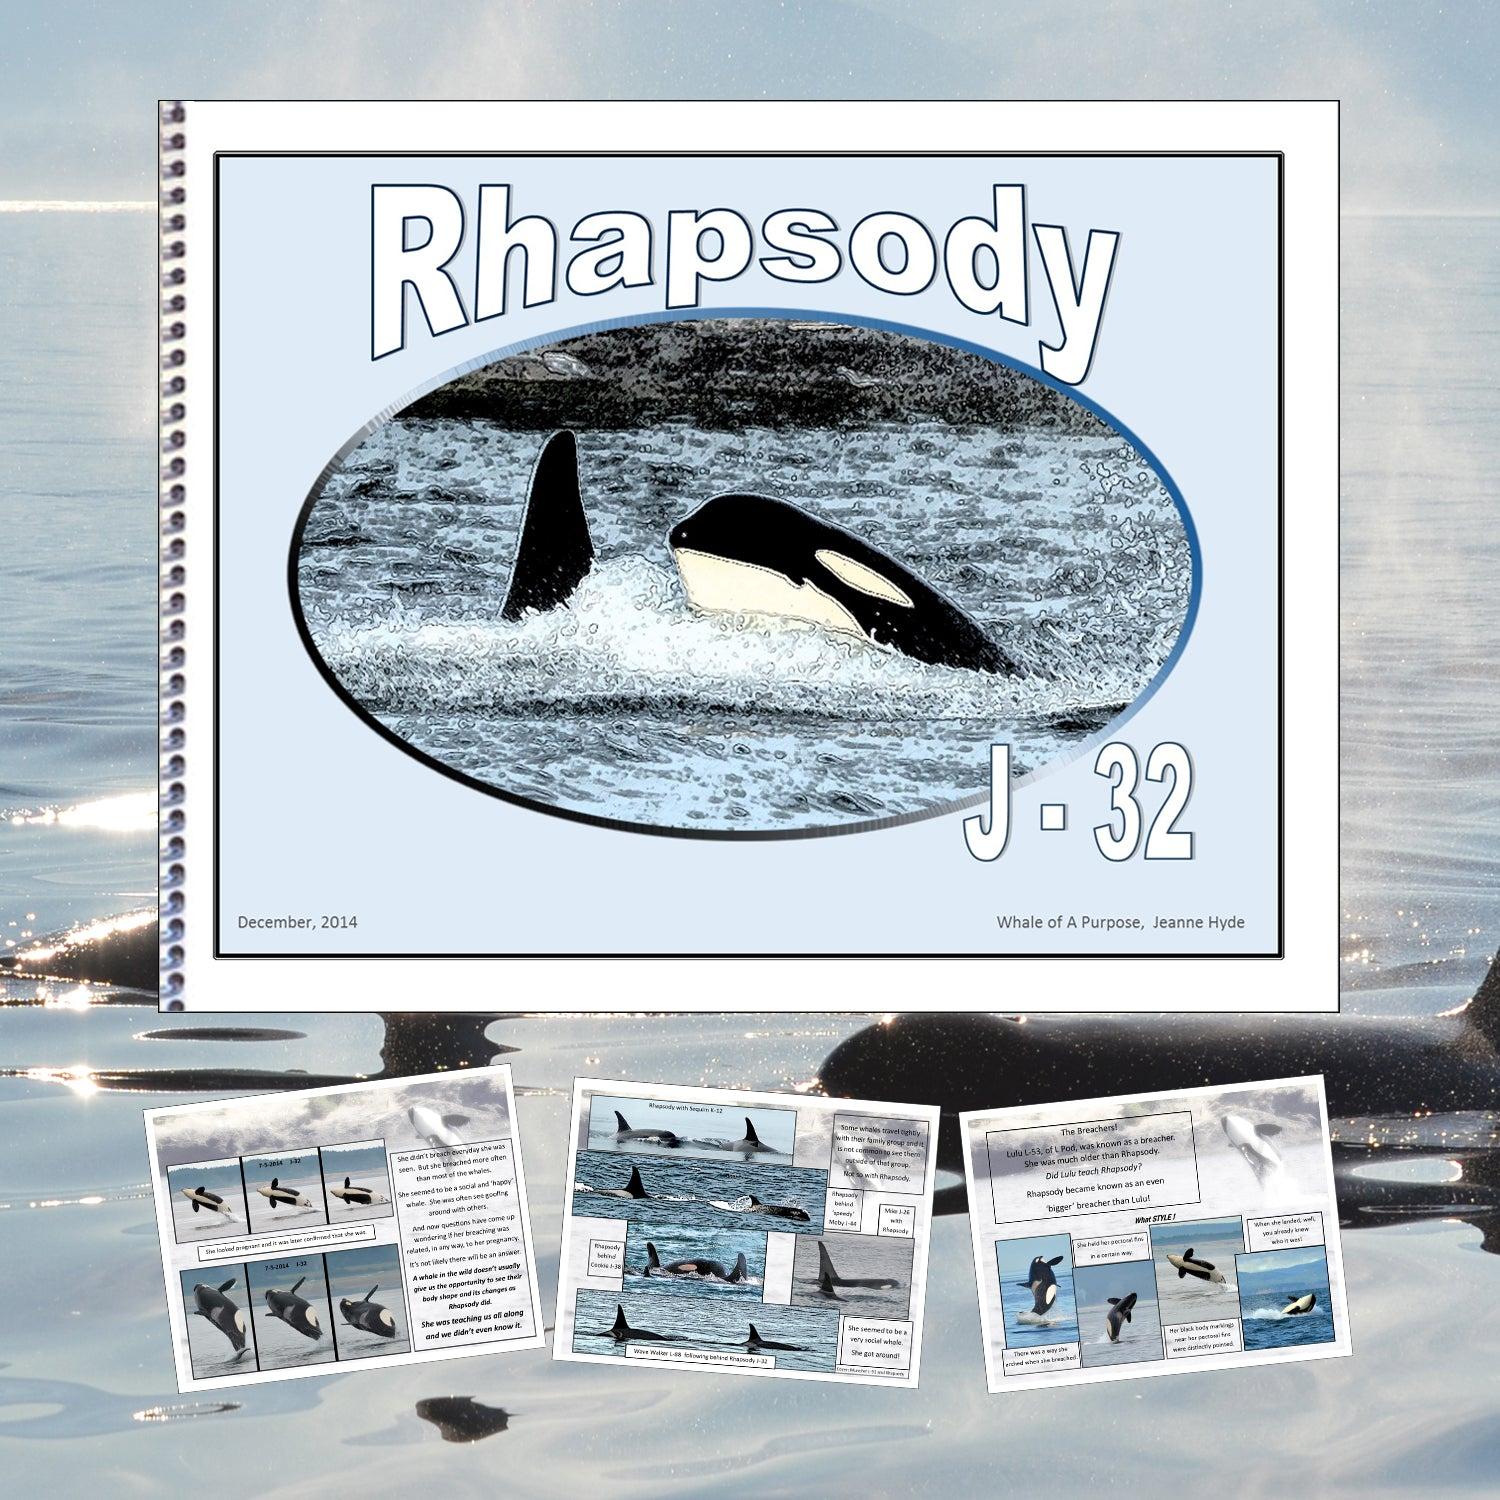 A Glimpse Into the life of Rhapsody (J-32)